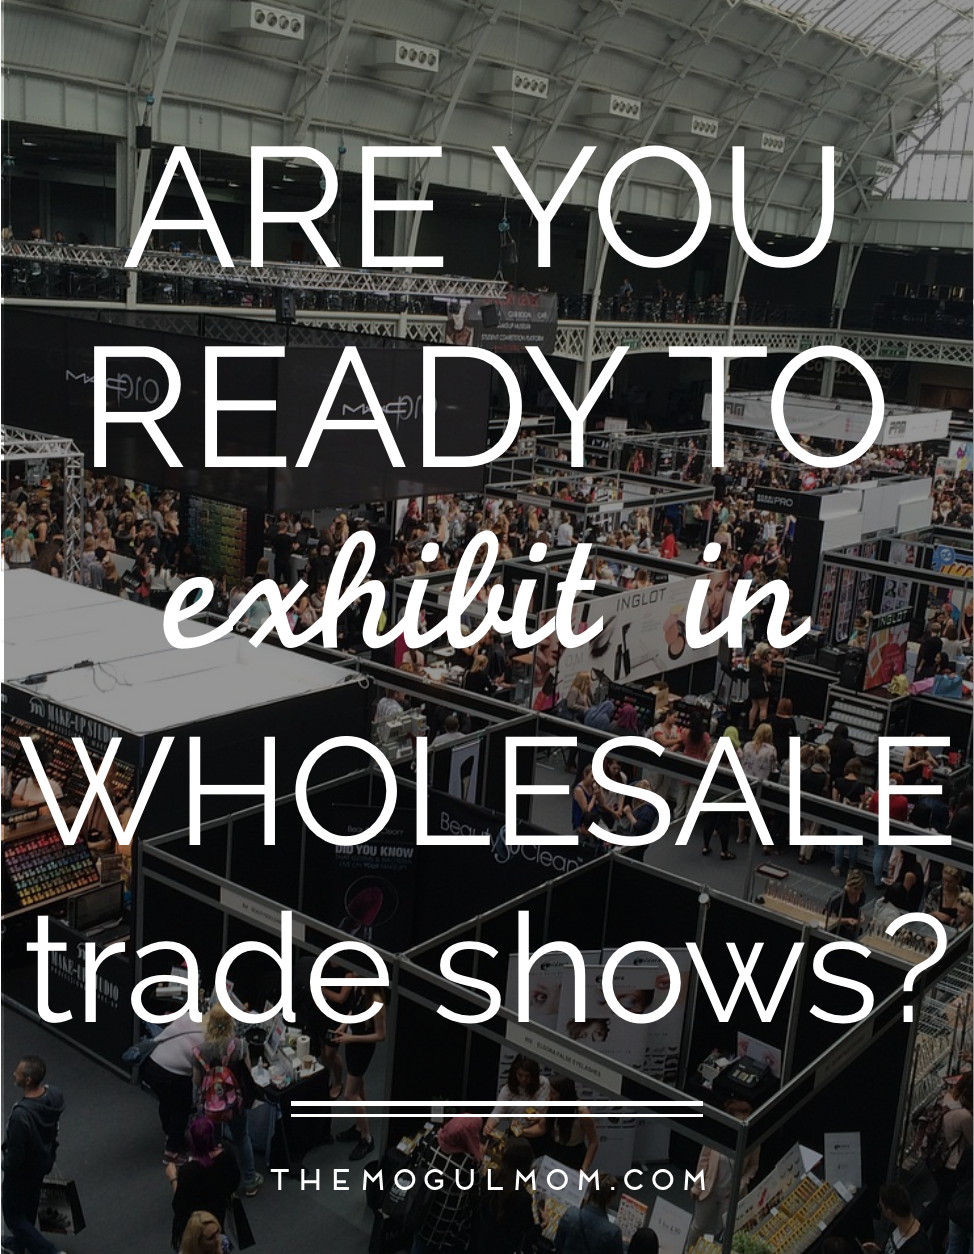 Are You Ready to Exhibit in Wholesale Trade Shows?